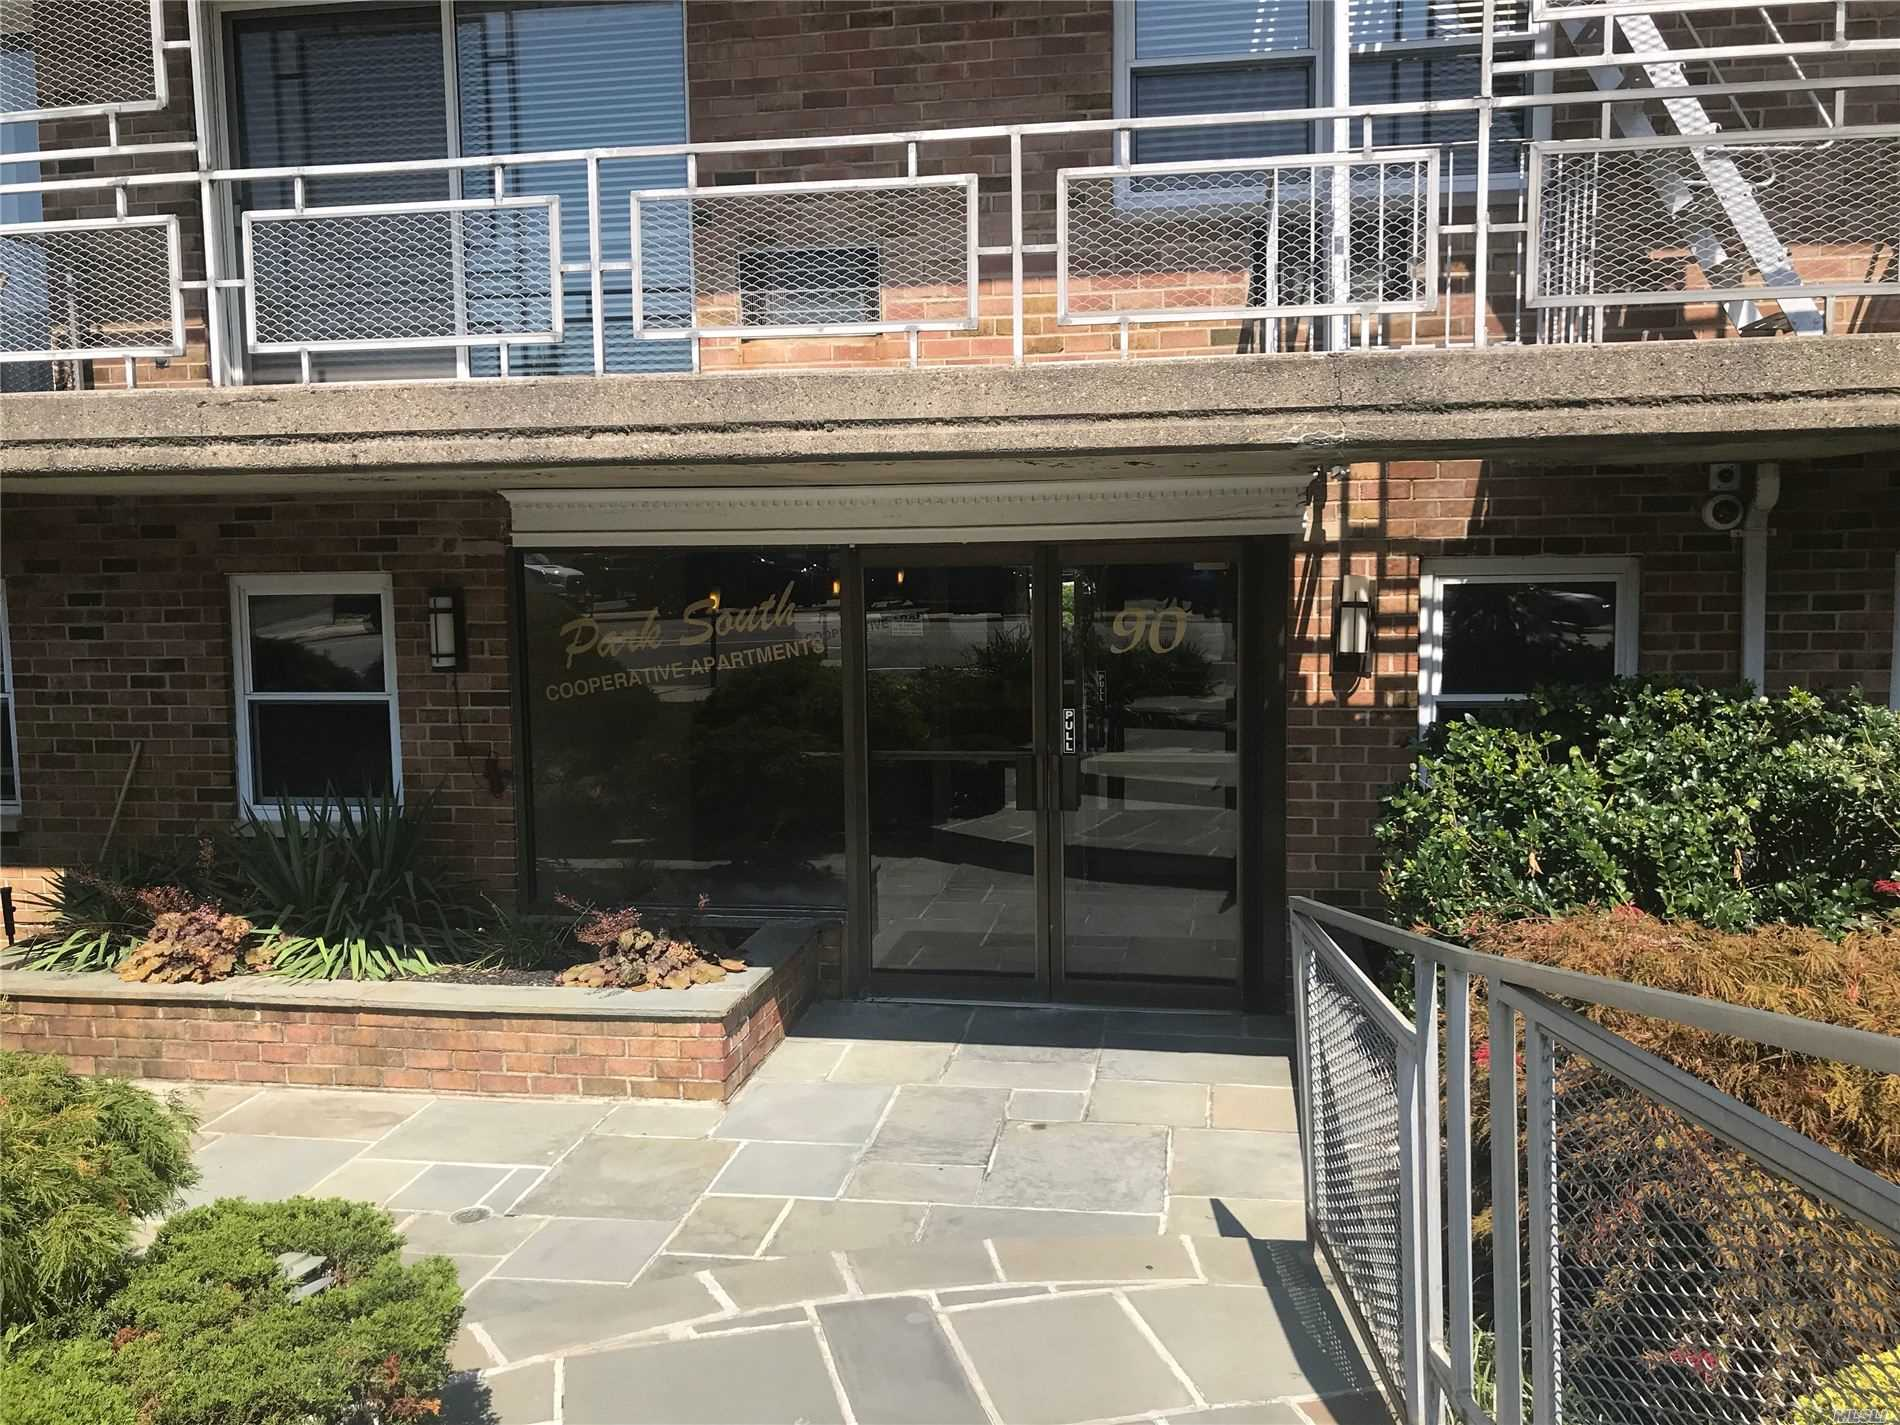 Large One Bedroom in Elevator Building W/Full Terrace, Updated Efficiency Kitchen with new stove, dishwasher, countertop. Large Master with walk in closet. Eating area, Large Living Area. Individual Thermostat in Unit. Rent Includes Parking Spot for 1, Heat, Water, Washer/Dryer Near Unit. Convenient To Dining/Bars, Gym/Yoga, SS Parkway, Assigned Parking. Only 35 minutes to Manhattan walk to LIRR.